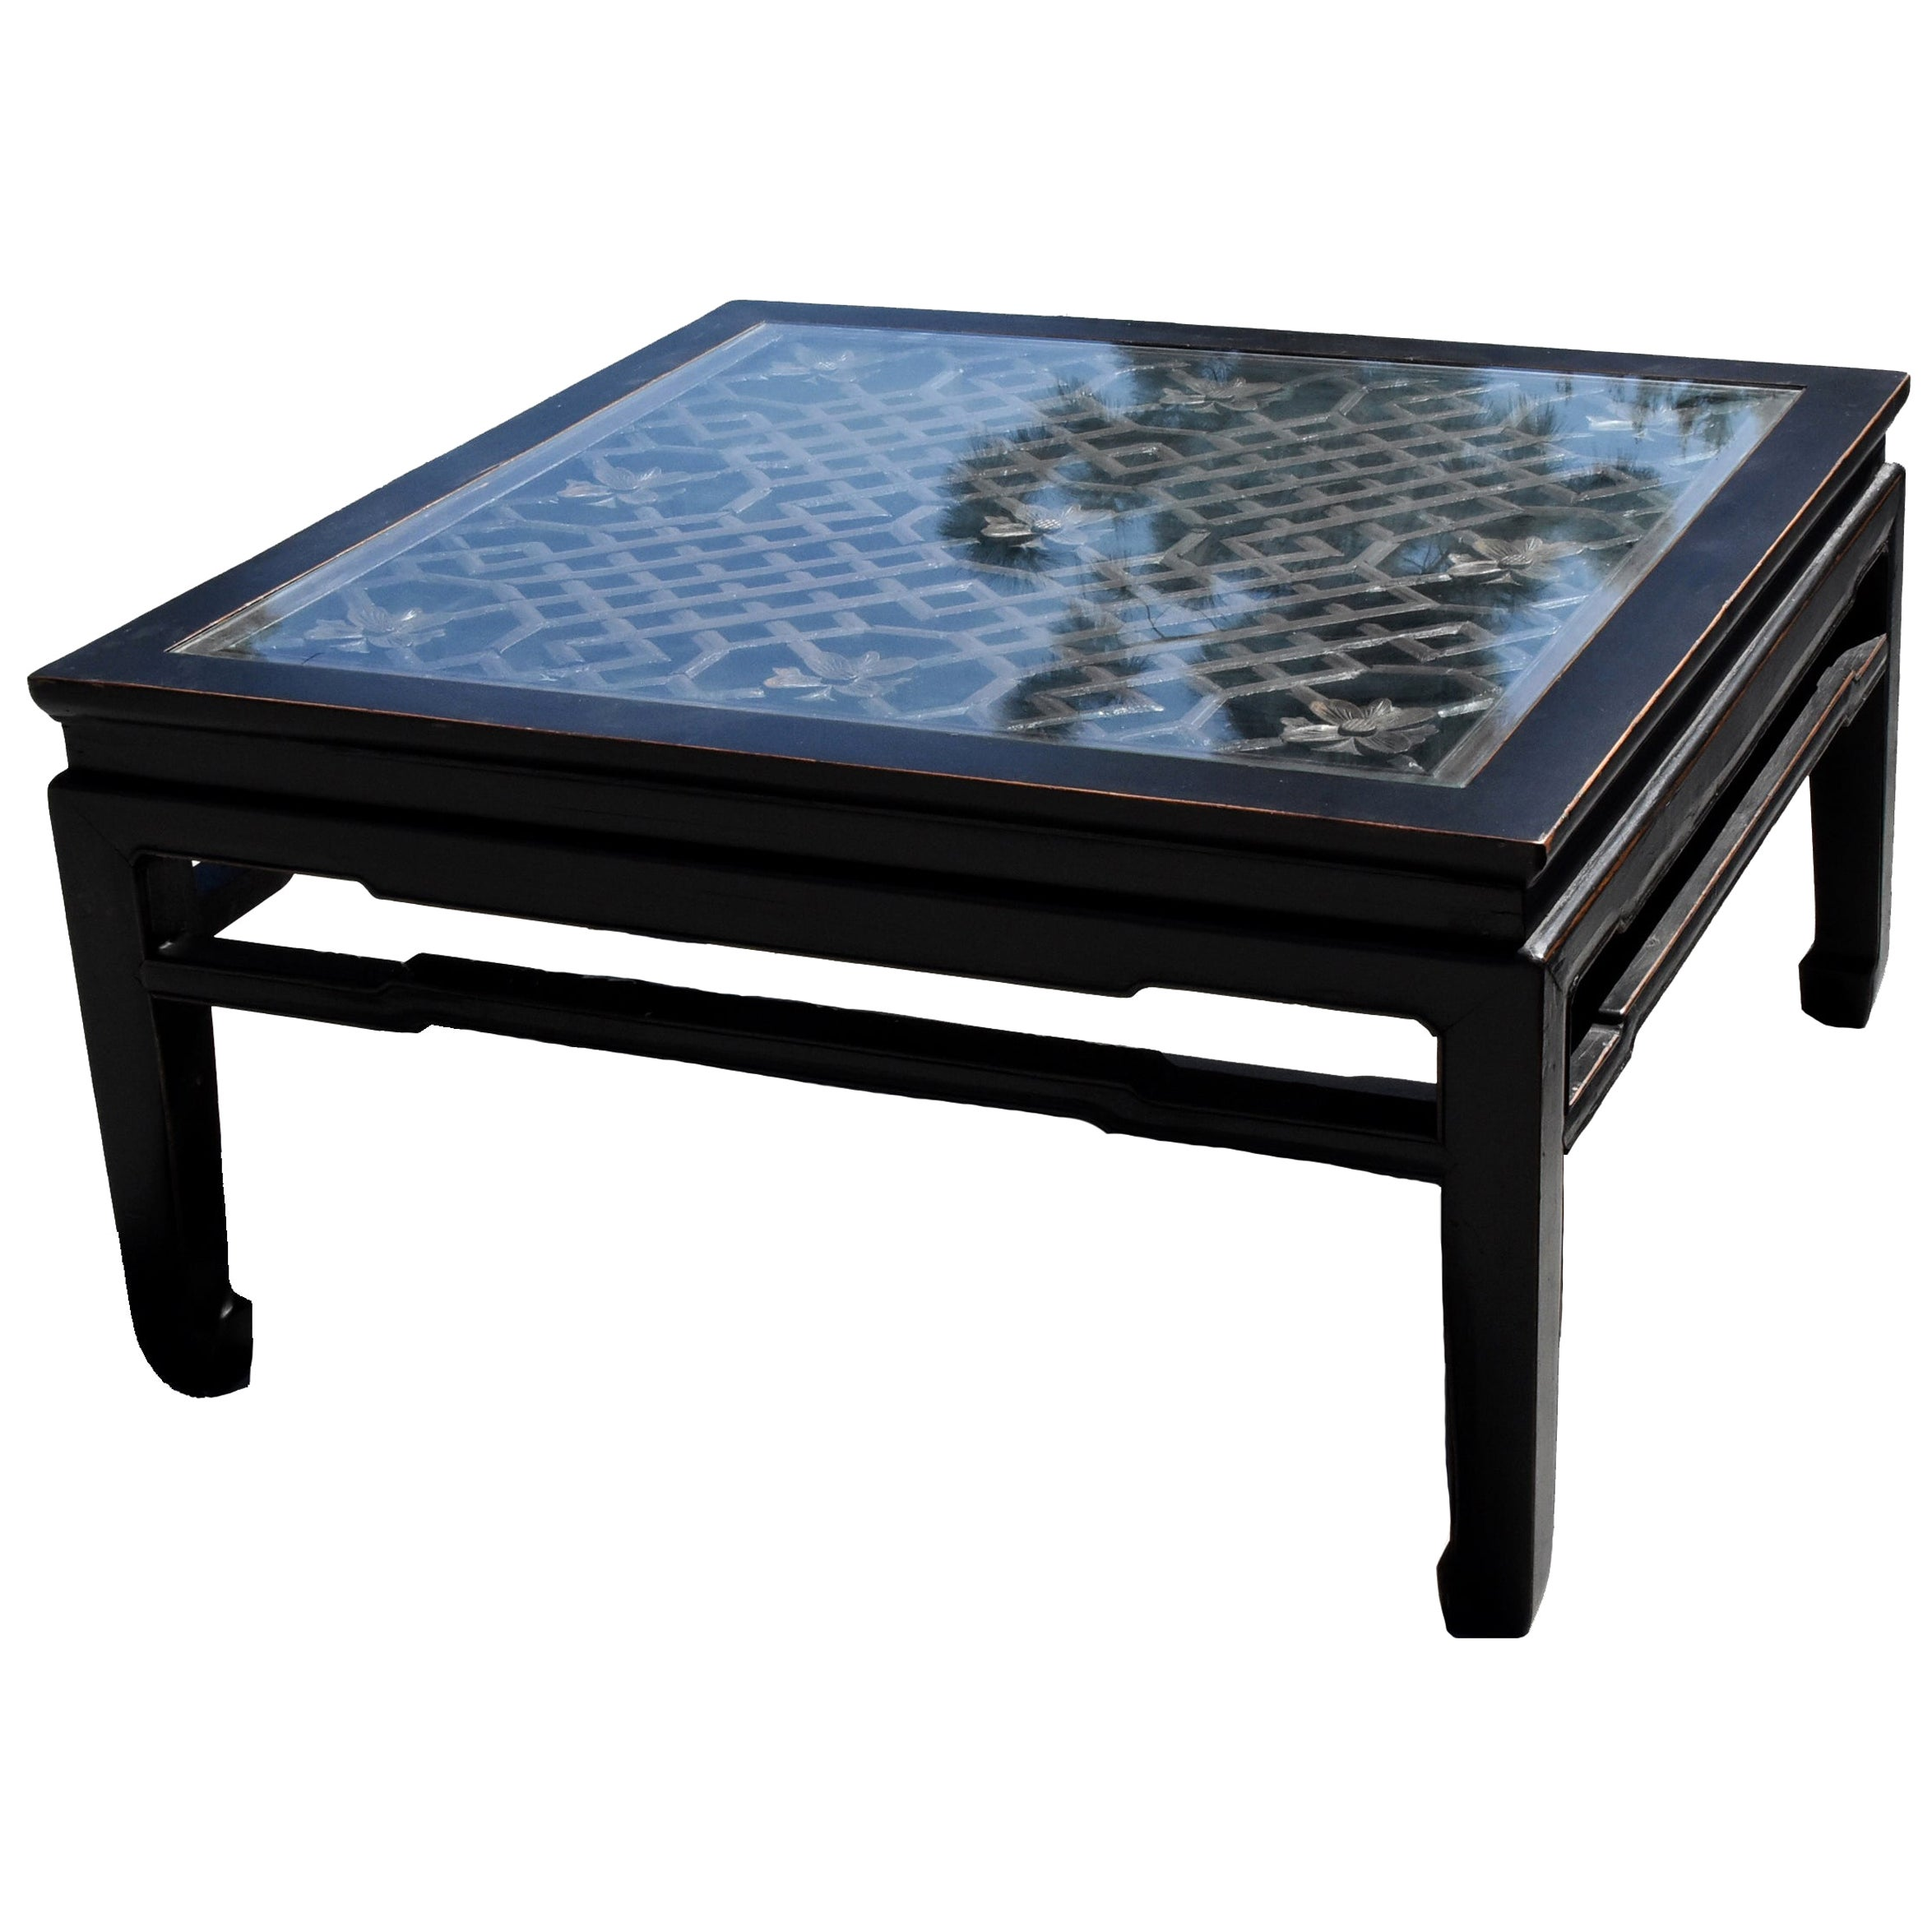 Black Square Asian Coffee Table with Antique Lattice Screen